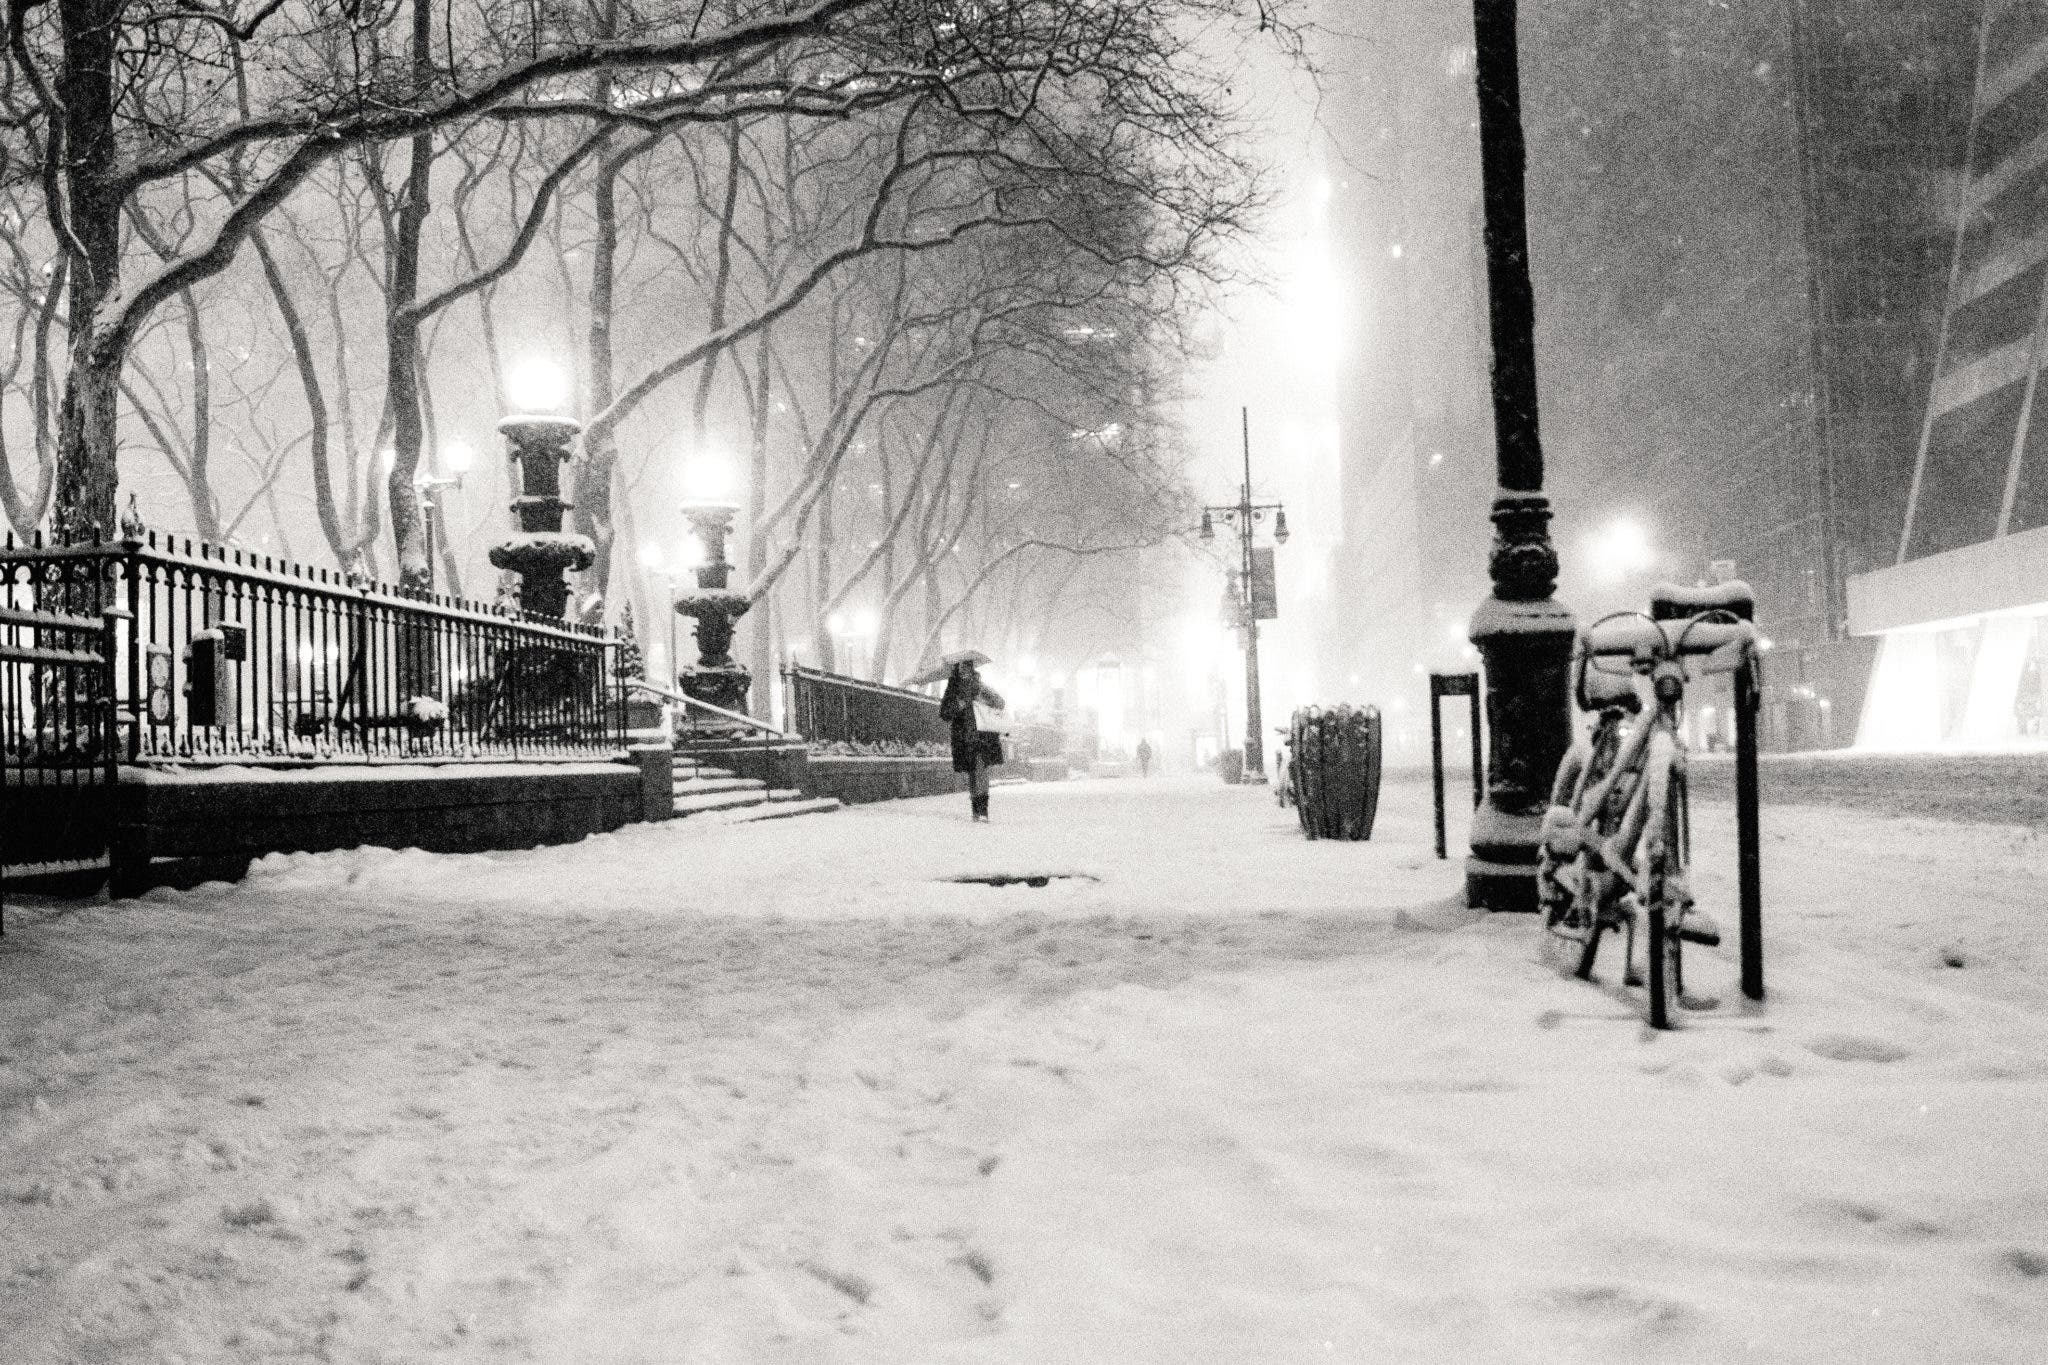 Vivienne Gucwas Photos Of The Snow In NYC